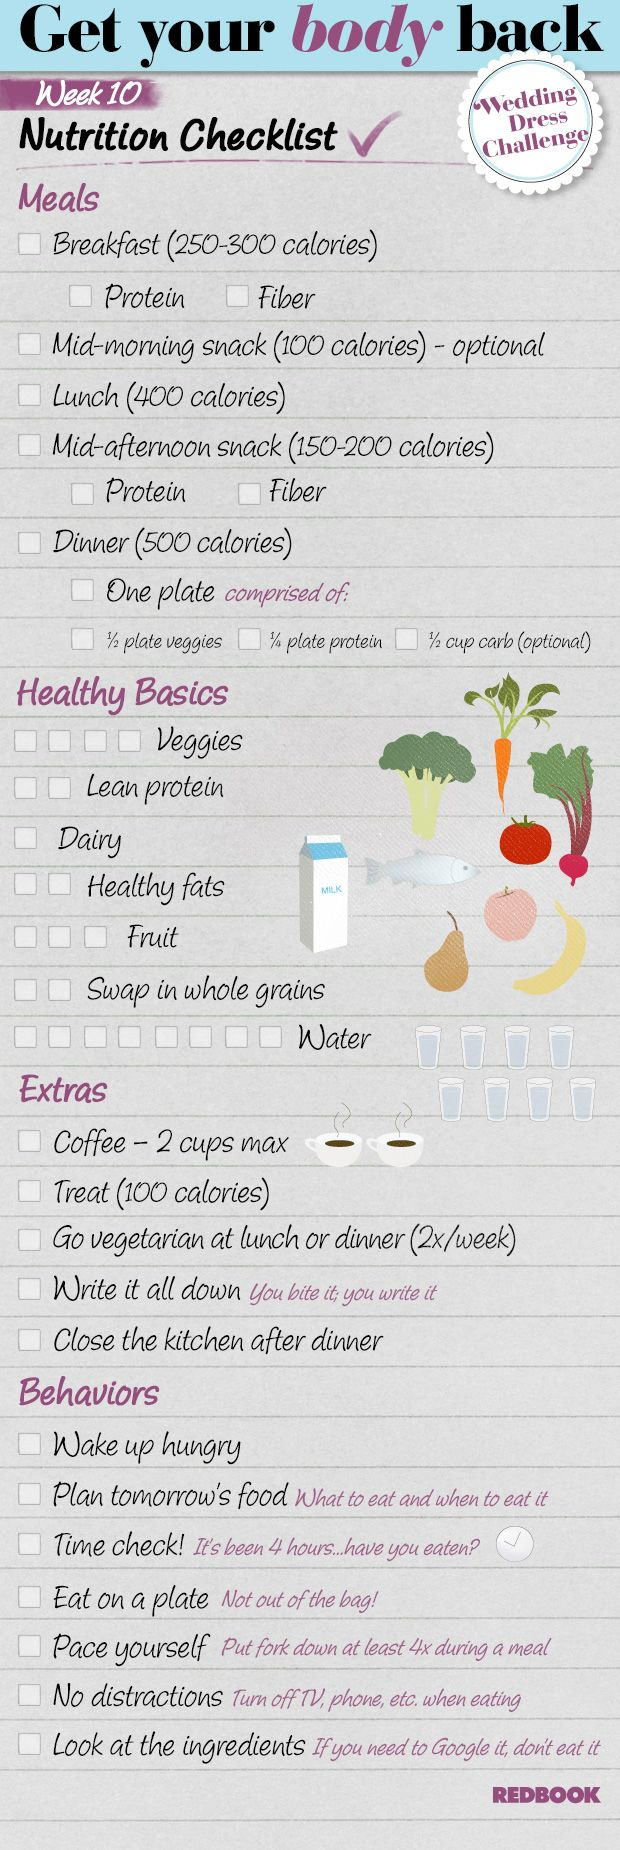 Wedding Dress Challenge Eating Checklist Week 10 - Redbook